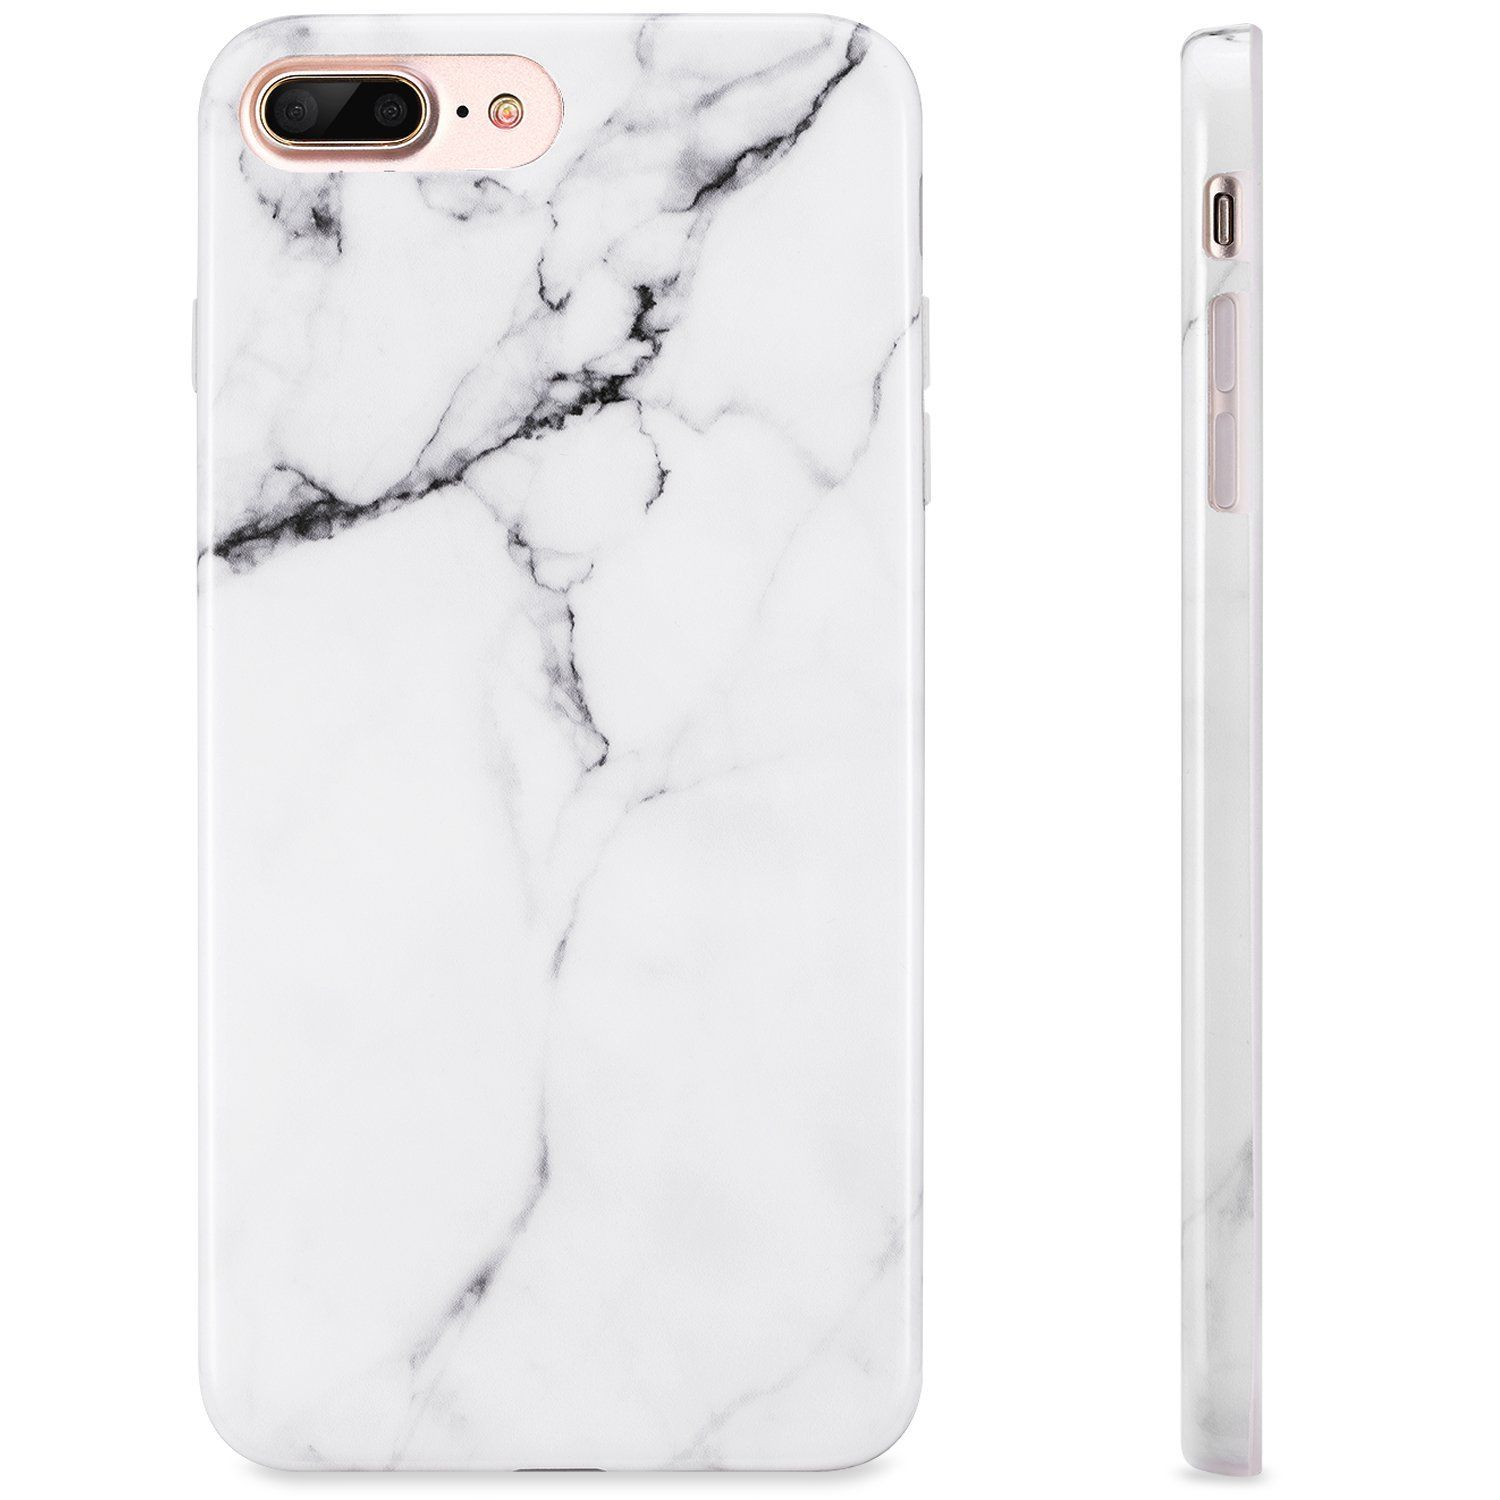 White Iphone 7 Plus Case Marble Design Iphone 8 Plus Case Kinfuton Shock Absorption Sleek Soft Tpu Case Compatible W Iphone 7 Plus Cases Iphone Iphone 7 Plus